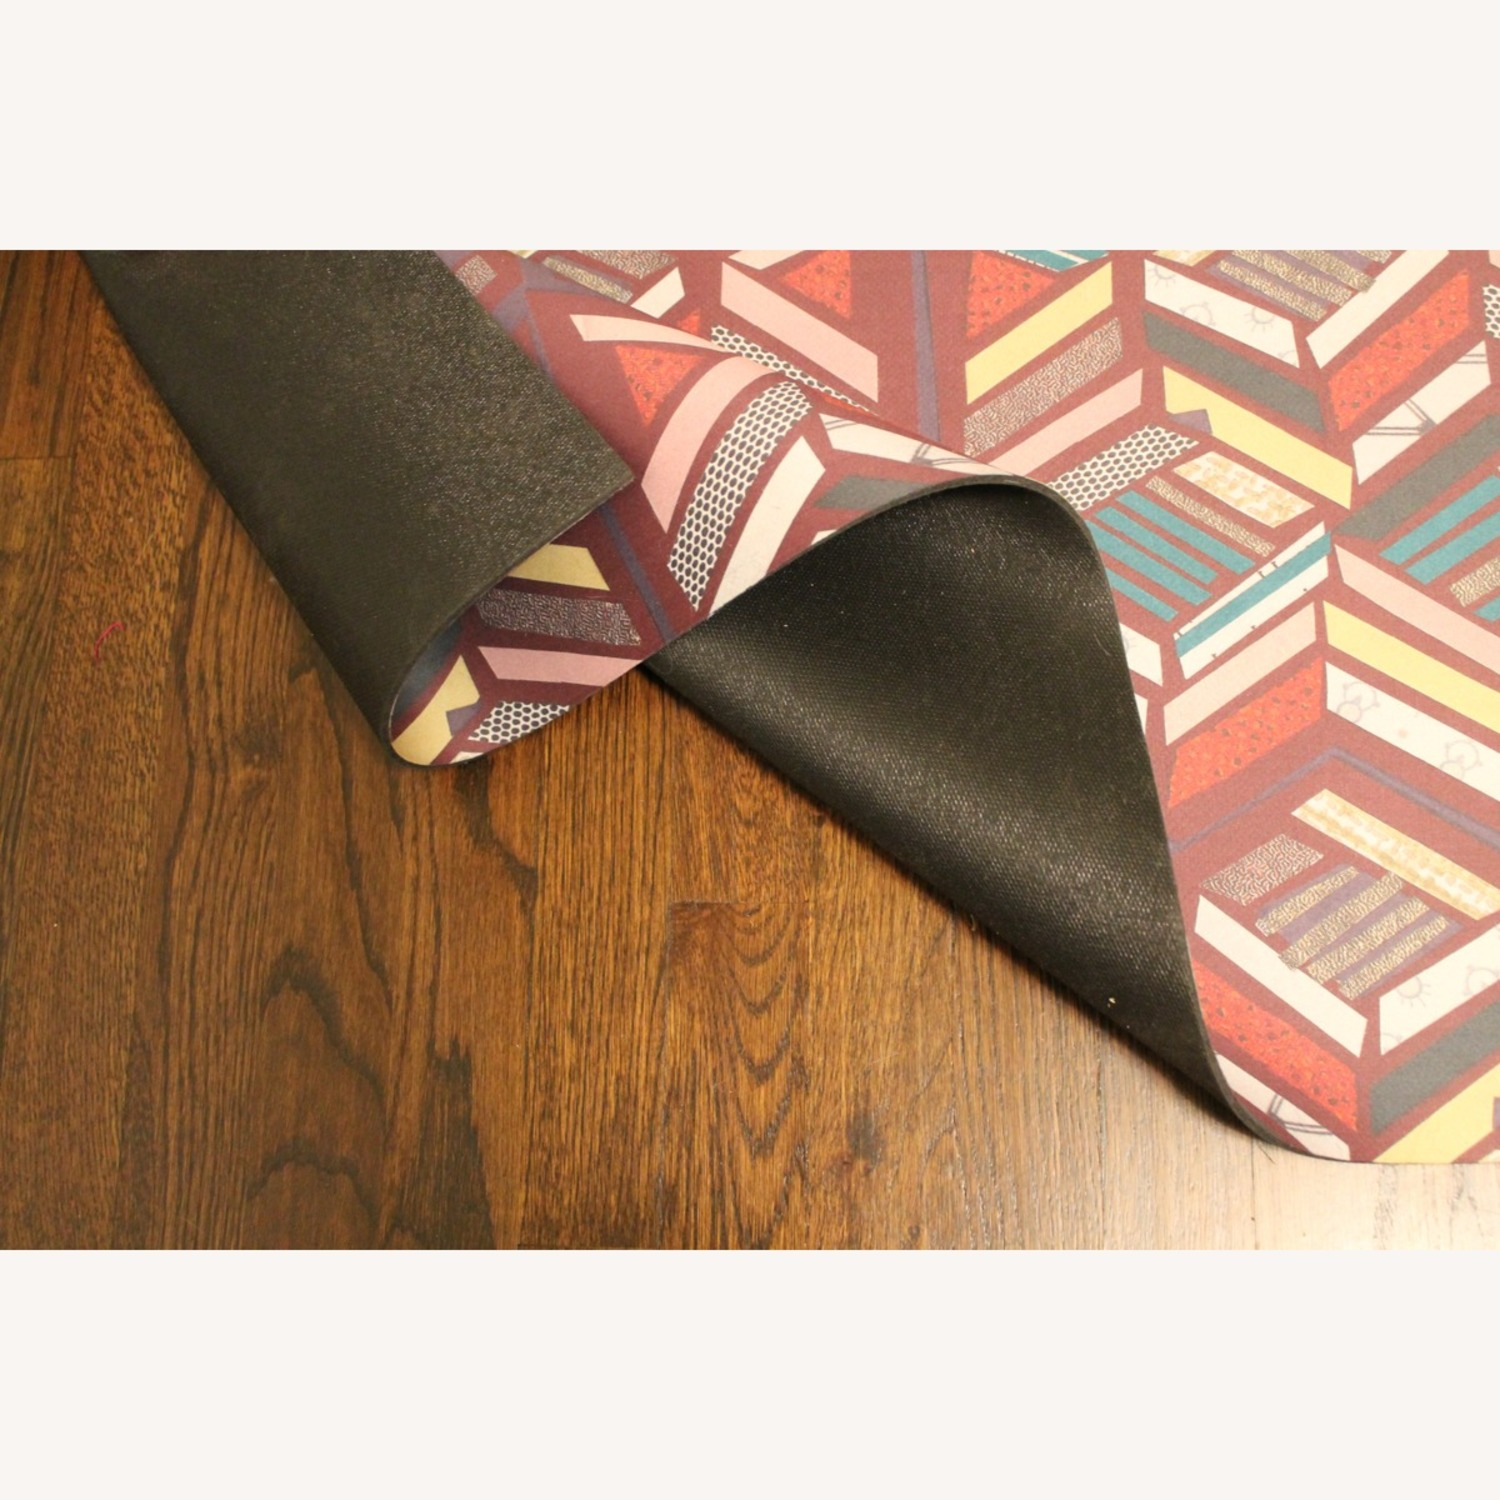 Domestic Construction Patterned Floor Mats (2) - image-3